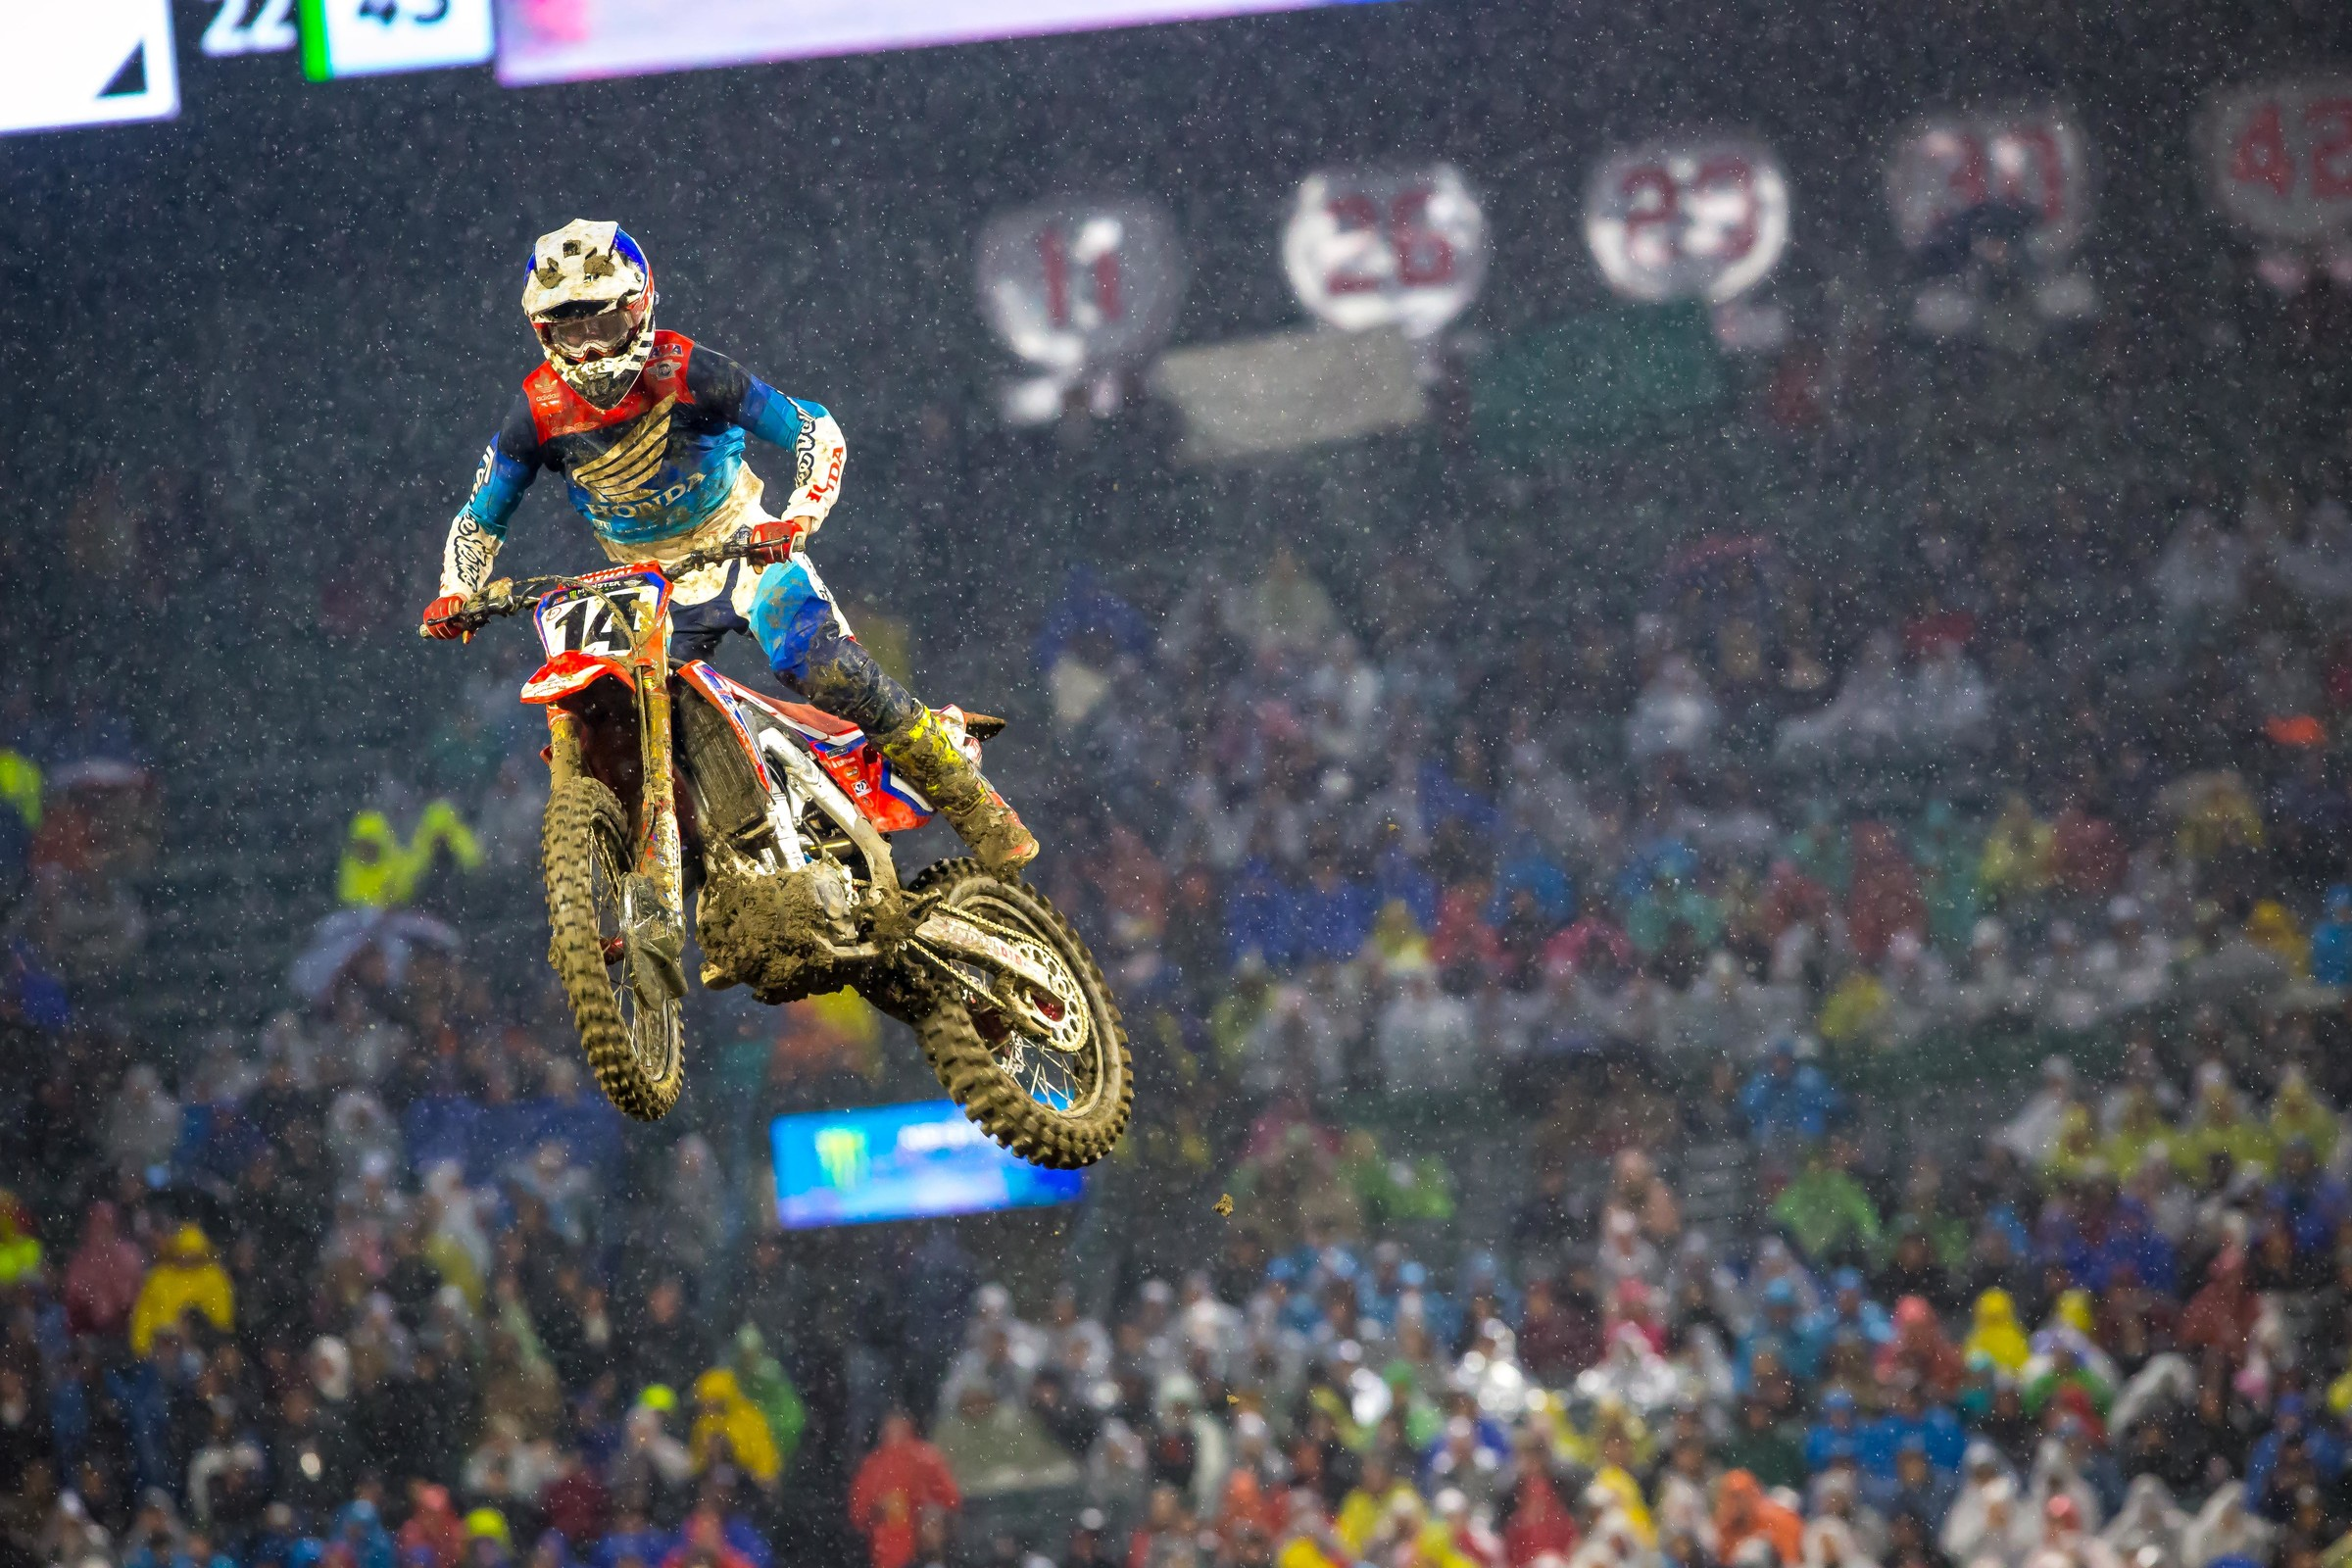 Coming off of an injury last season, Cole Seely finished in 10th.